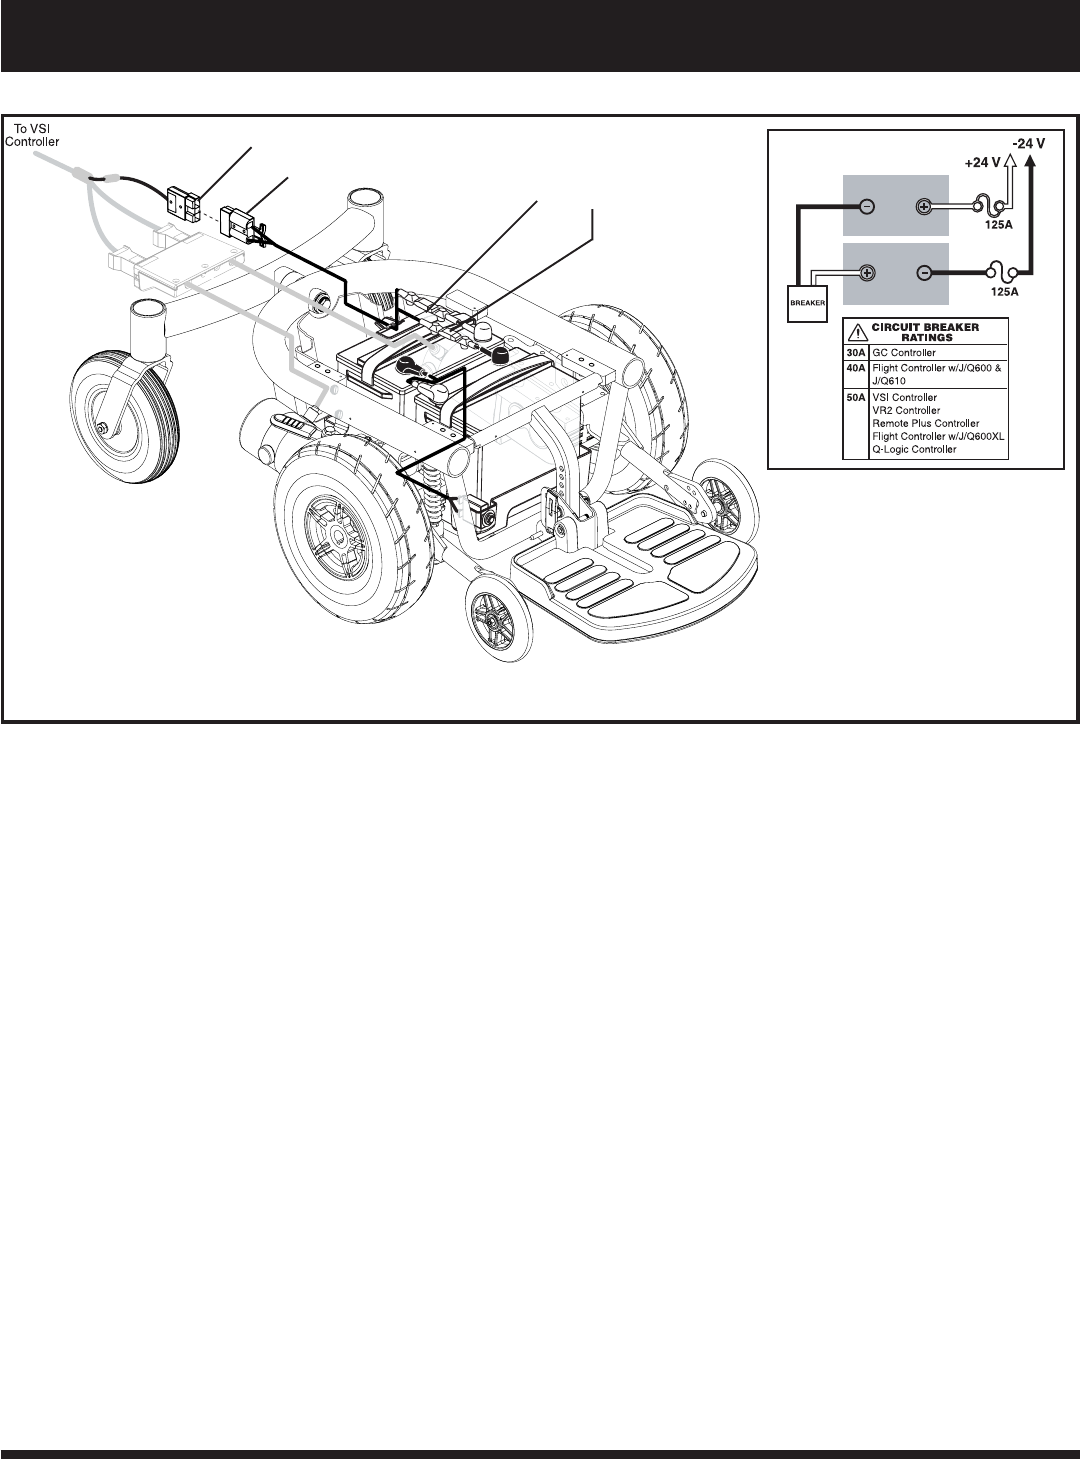 1b2e592e e9d3 42e1 aff3 c15f51ce2886 bg28 page 40 of pride mobility automobile accessories 1103 user guide jazzy 1103 ultra wiring diagram at soozxer.org